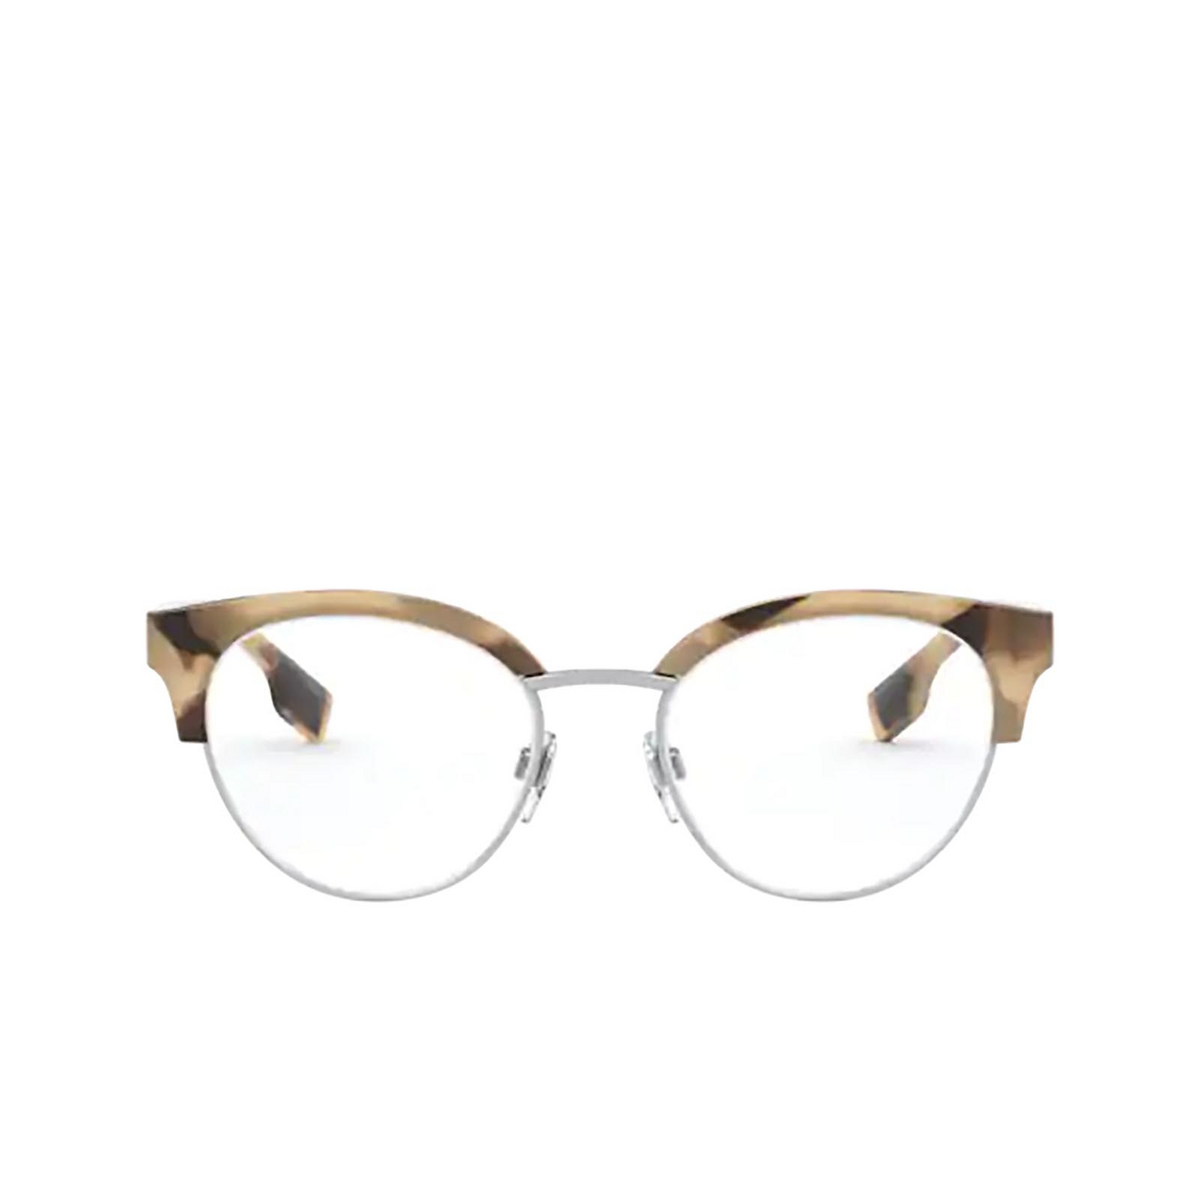 Burberry® Round Eyeglasses: Birch BE2316 color Spotted Horn / Silver 3501 - front view.